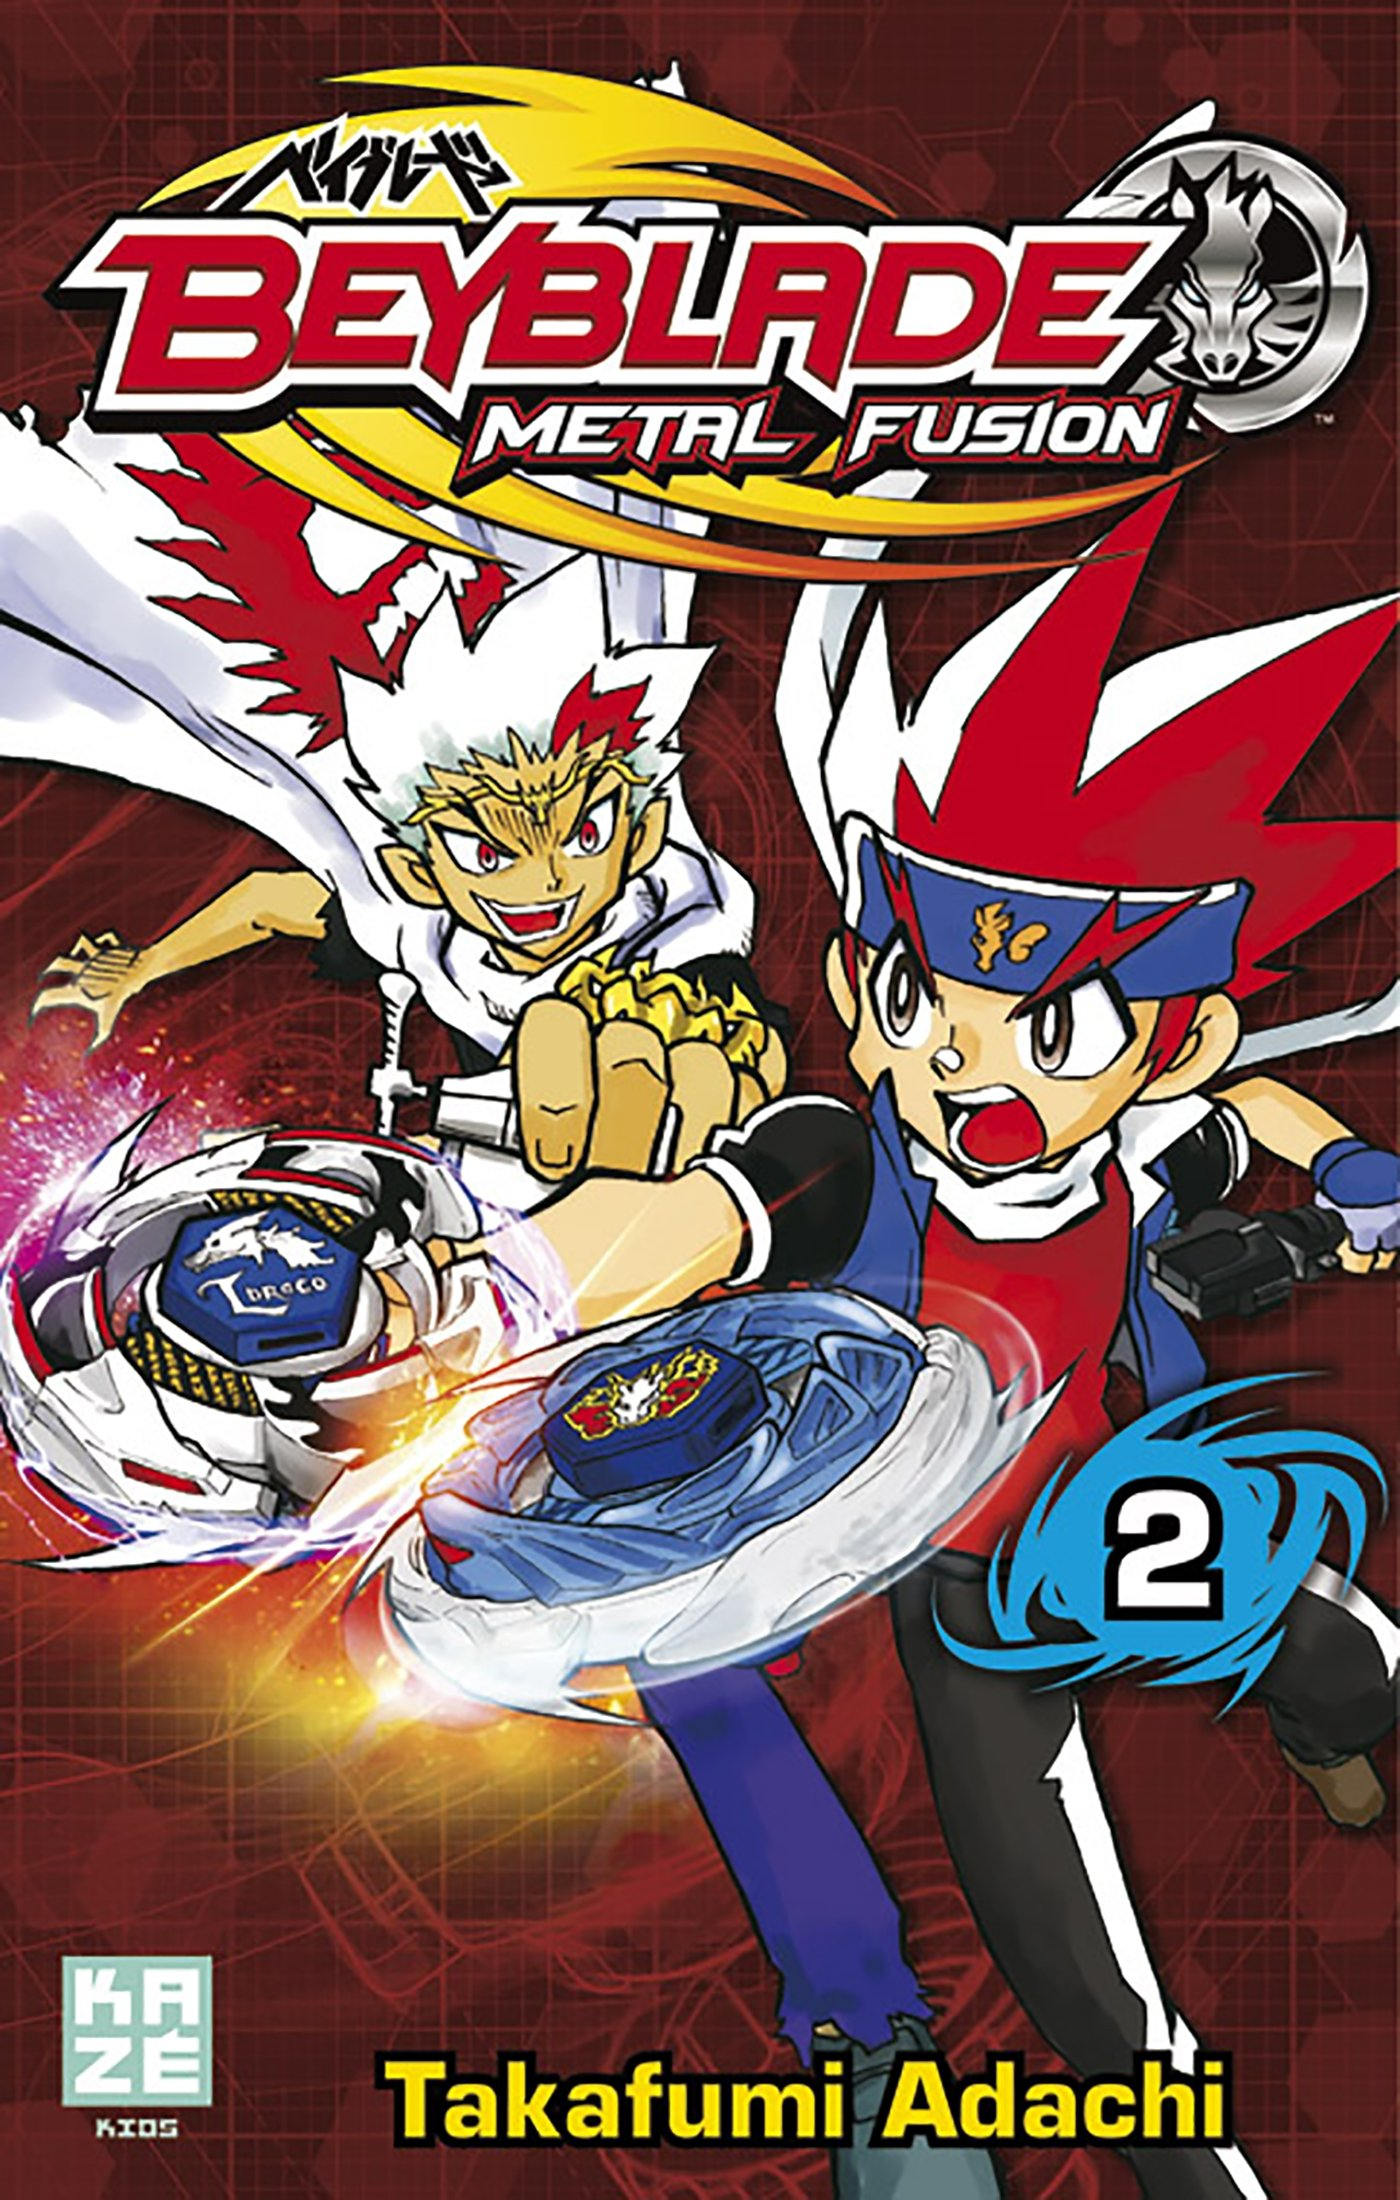 Beyblade Metal Fusion Tome 2 French Edition Takafumi Adachi 9782820301239 Amazon Com Books